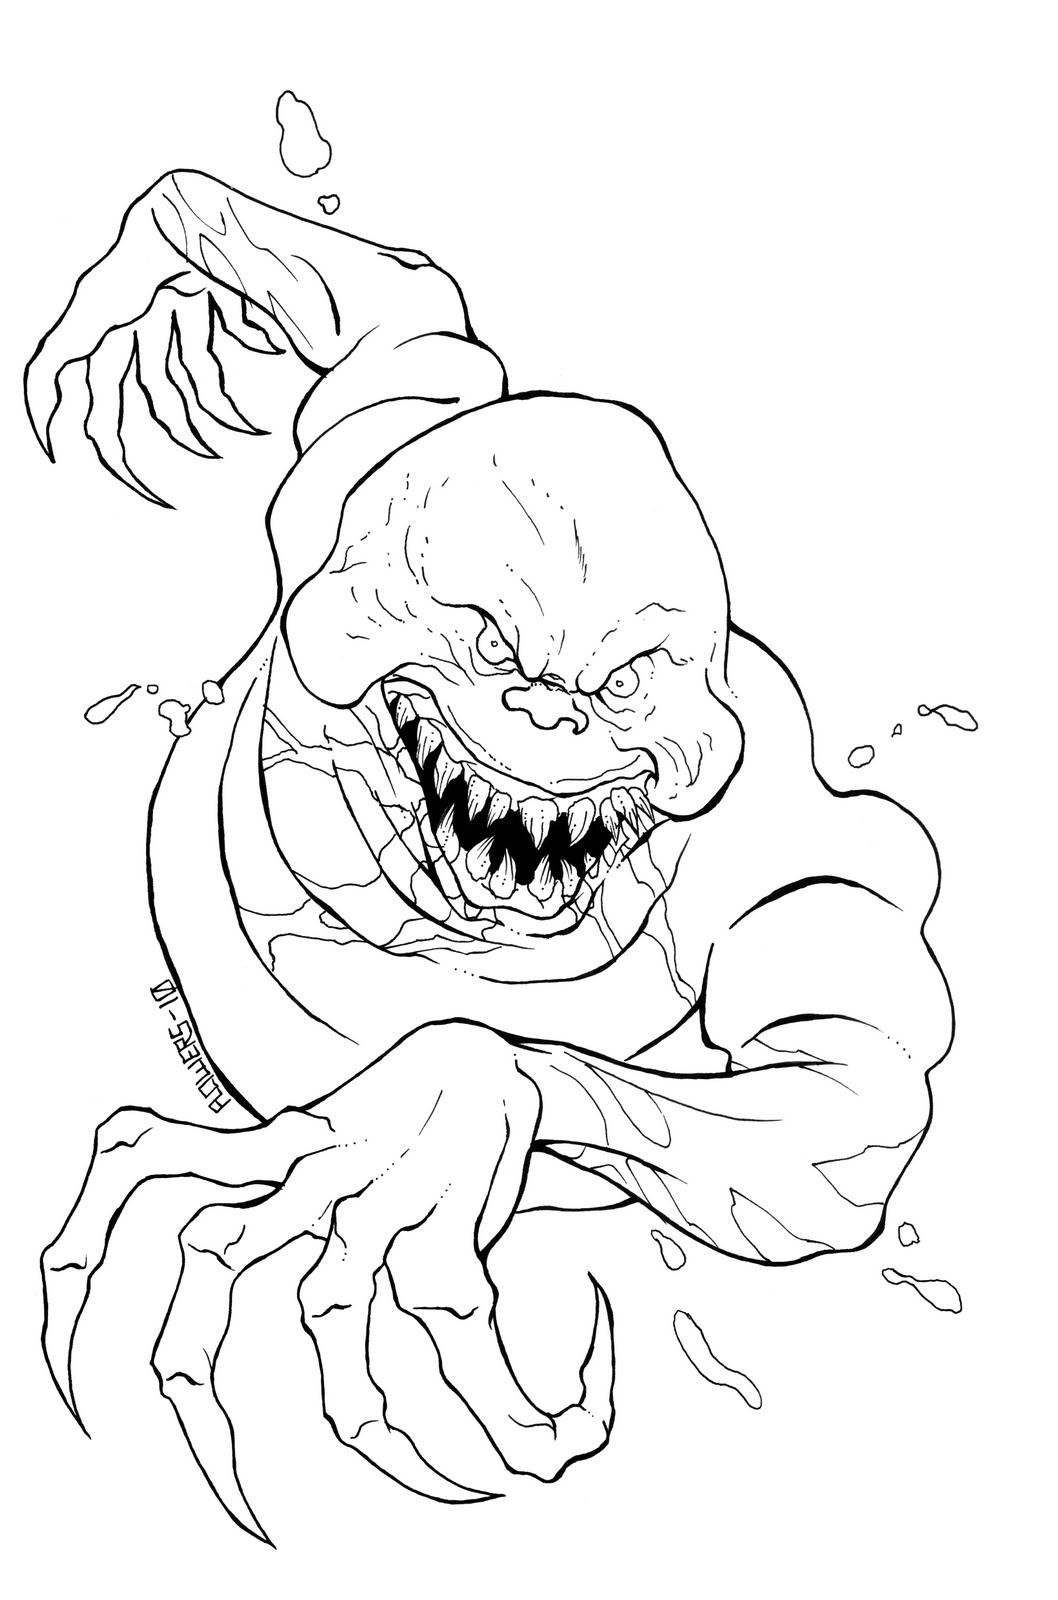 Monster From Ghostbusters